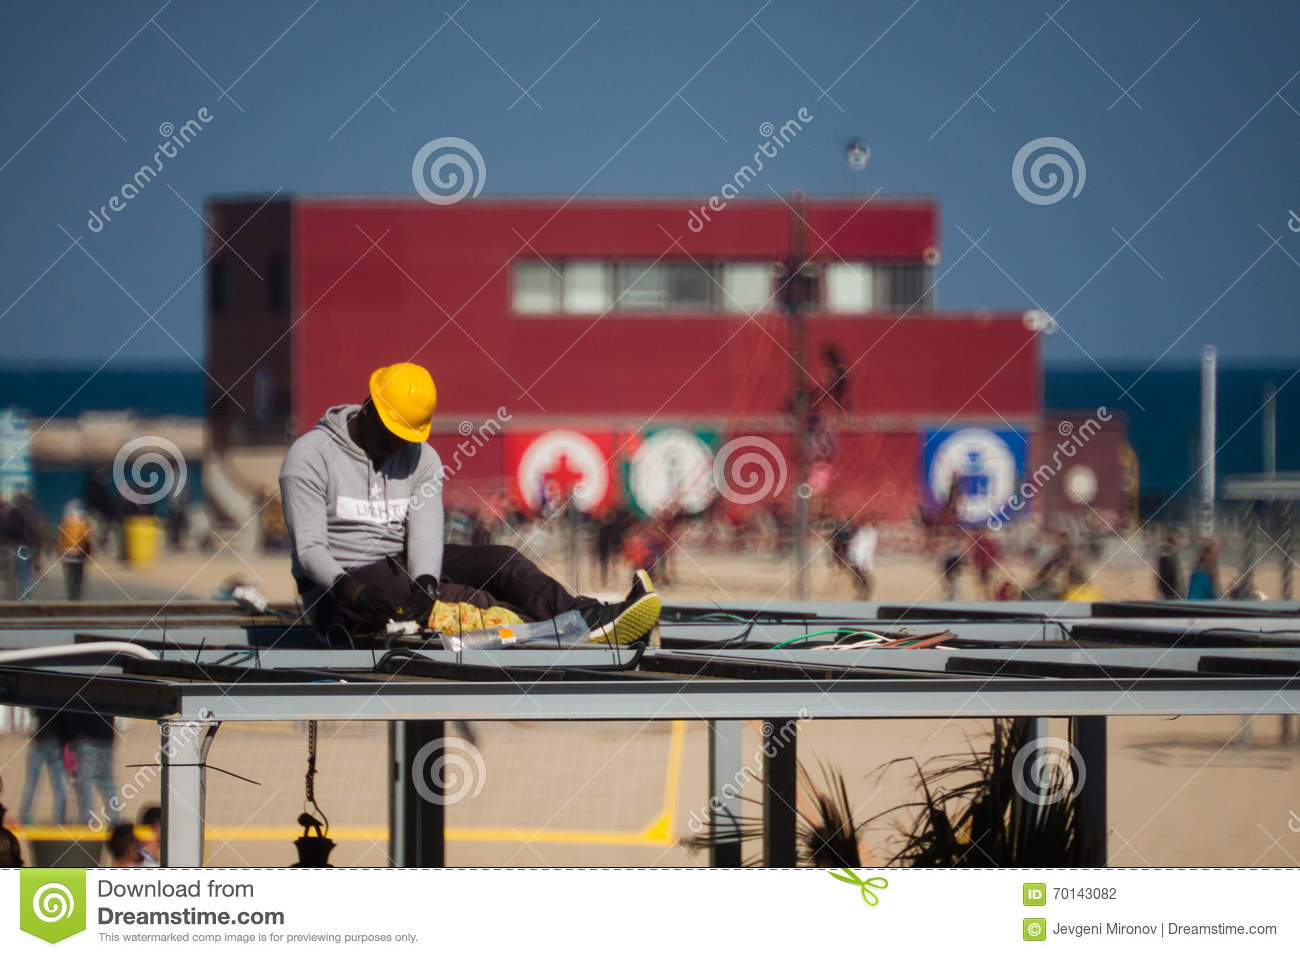 Barceloneta,Barcelona, Spain, March 2016: electrician work on a roof